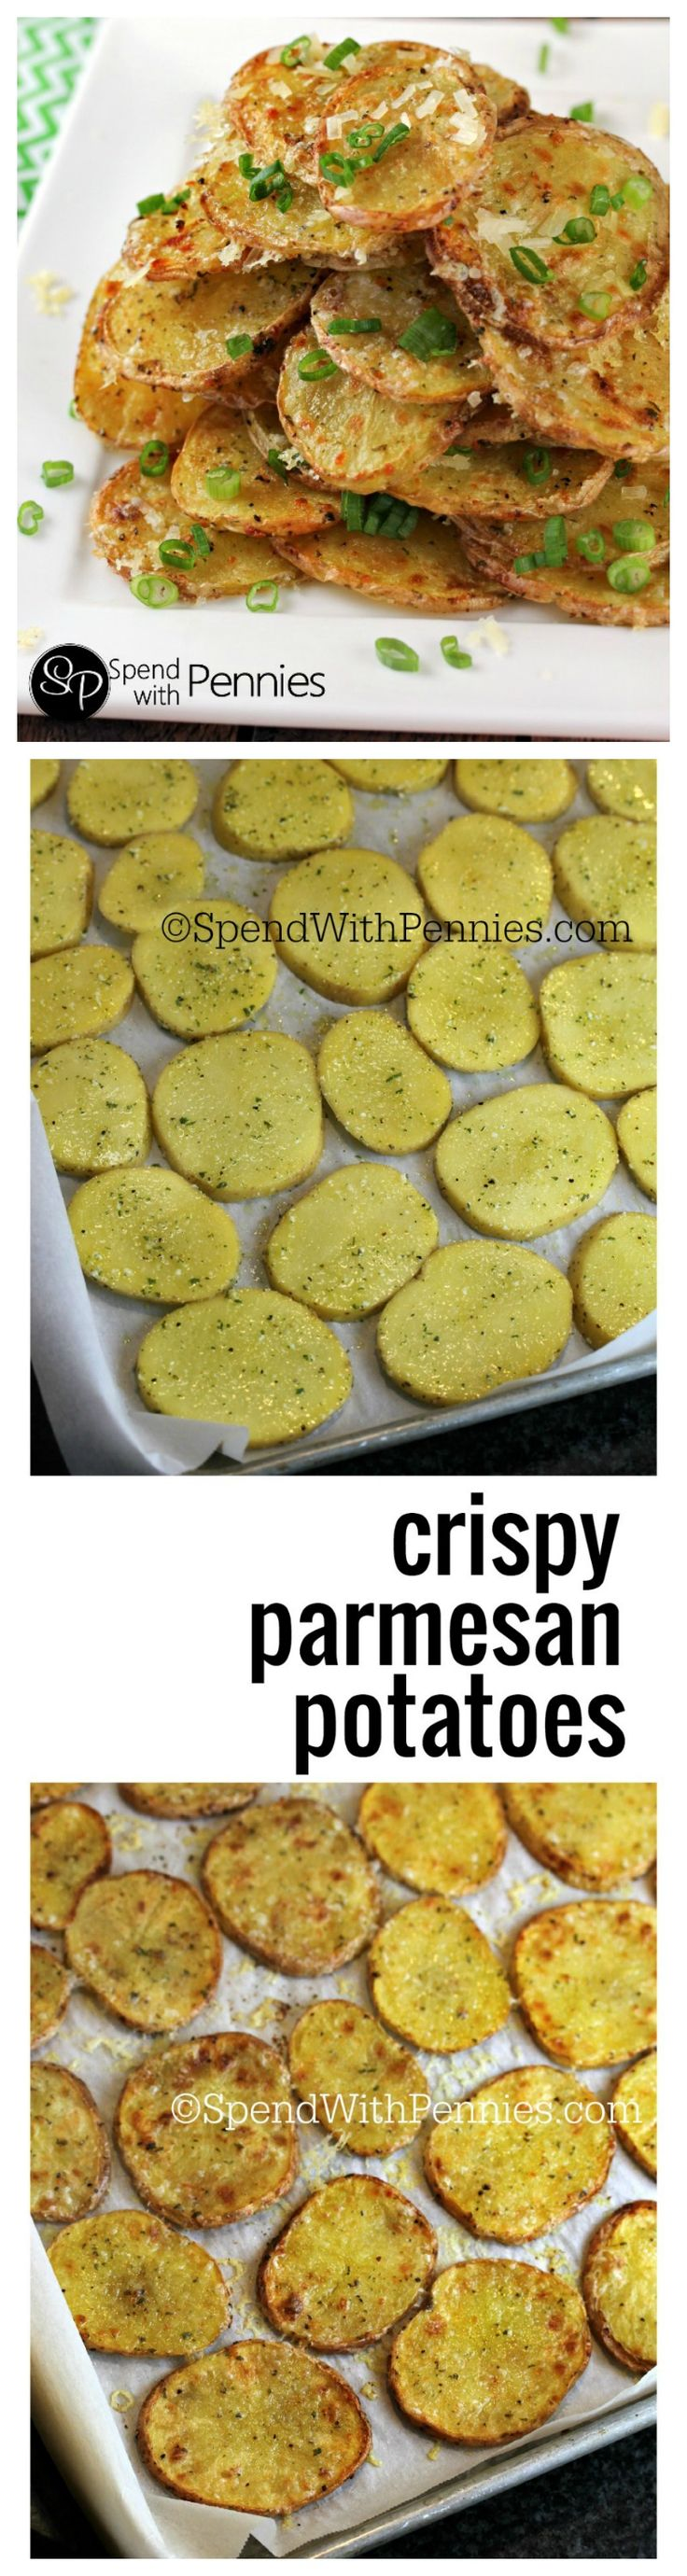 Crispy Parmesan Potatoes! These easy delicious potatoes make the perfect side or snack! #recipe